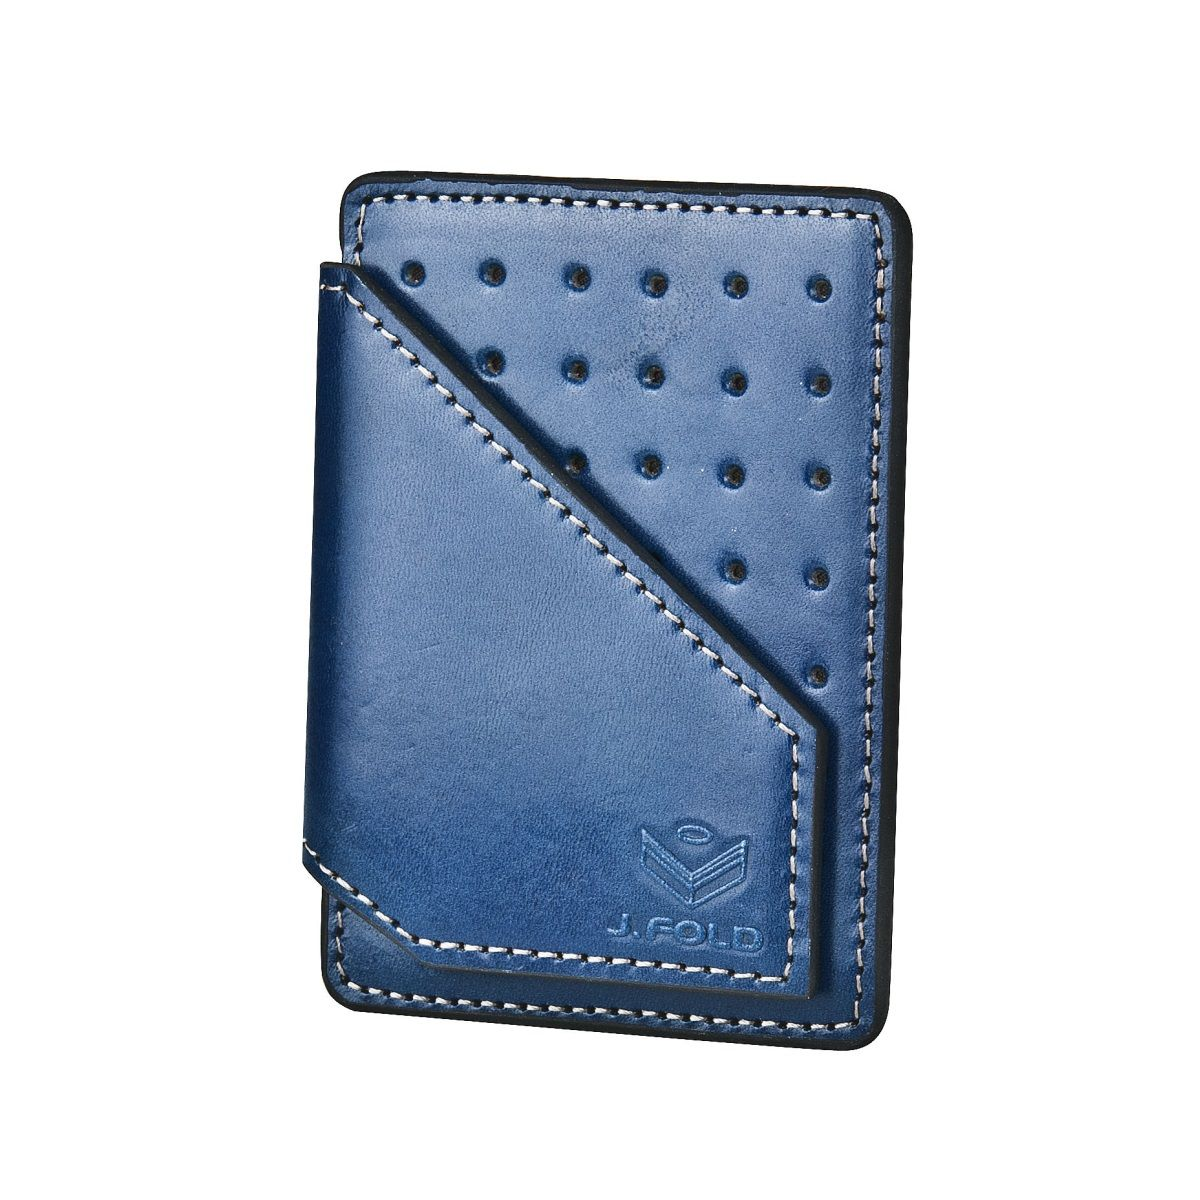 J.FOLD Mag Card Carrier - Cobalt